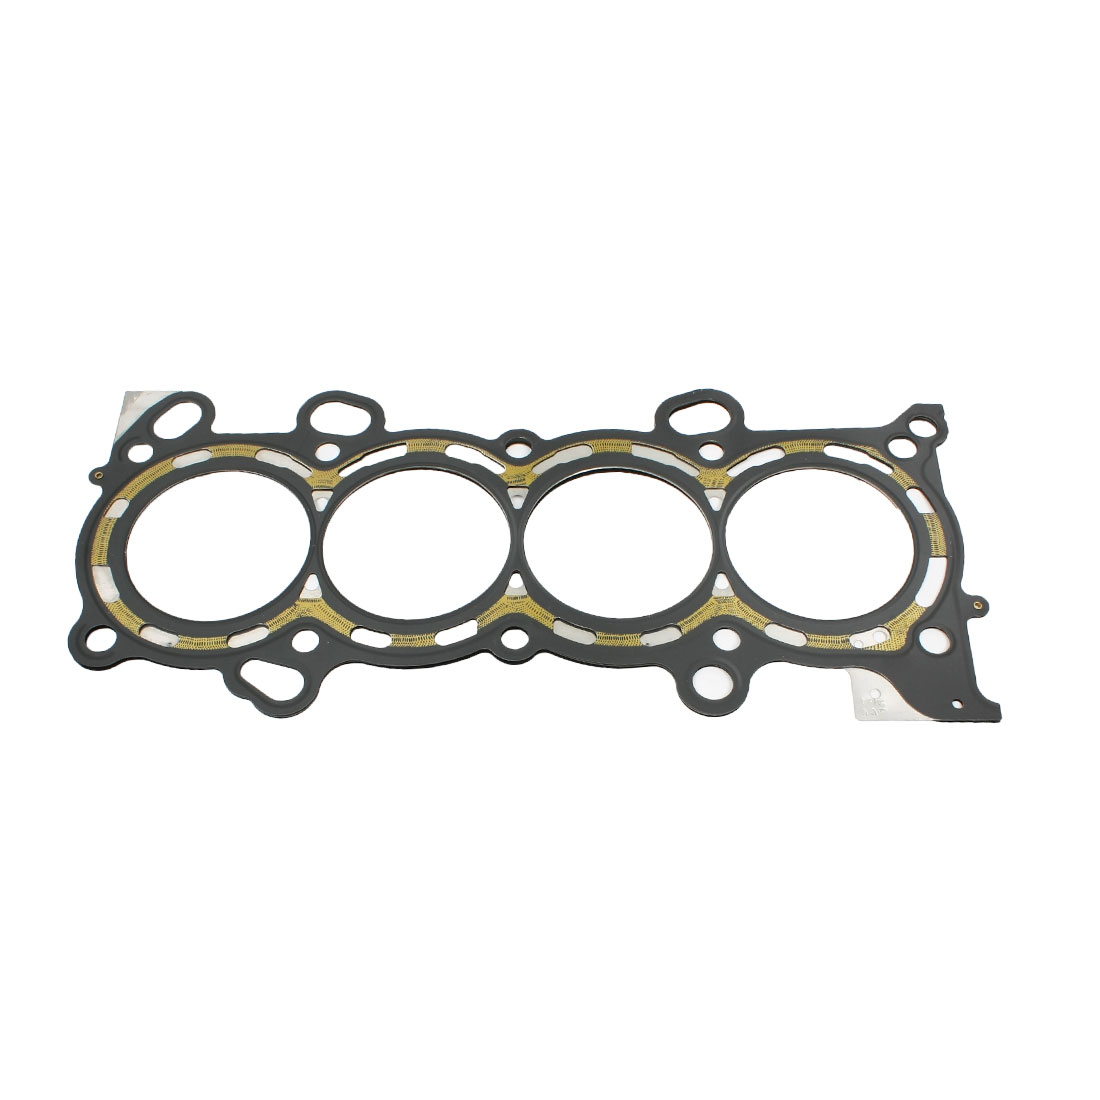 Vehicle Car K20A7 Engine Cylinder Head Gasket Replacement 12251-PAC-004